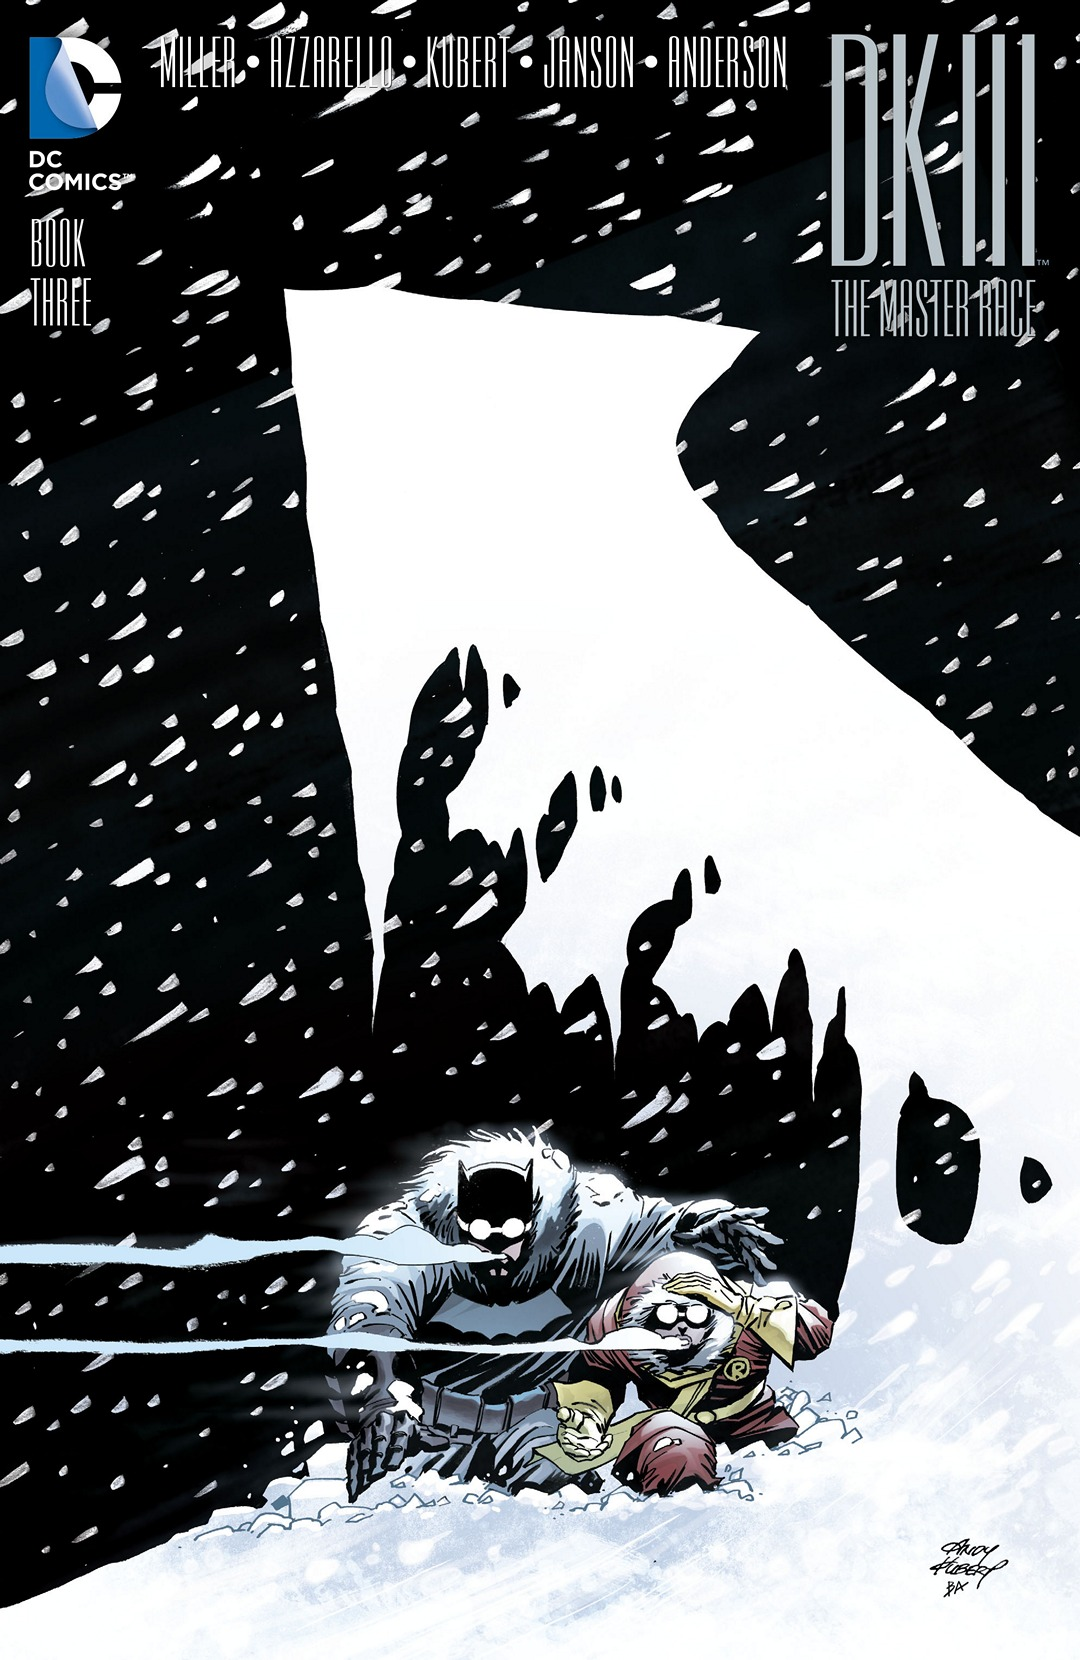 Dark Knight III: The Master Race Vol 1 3